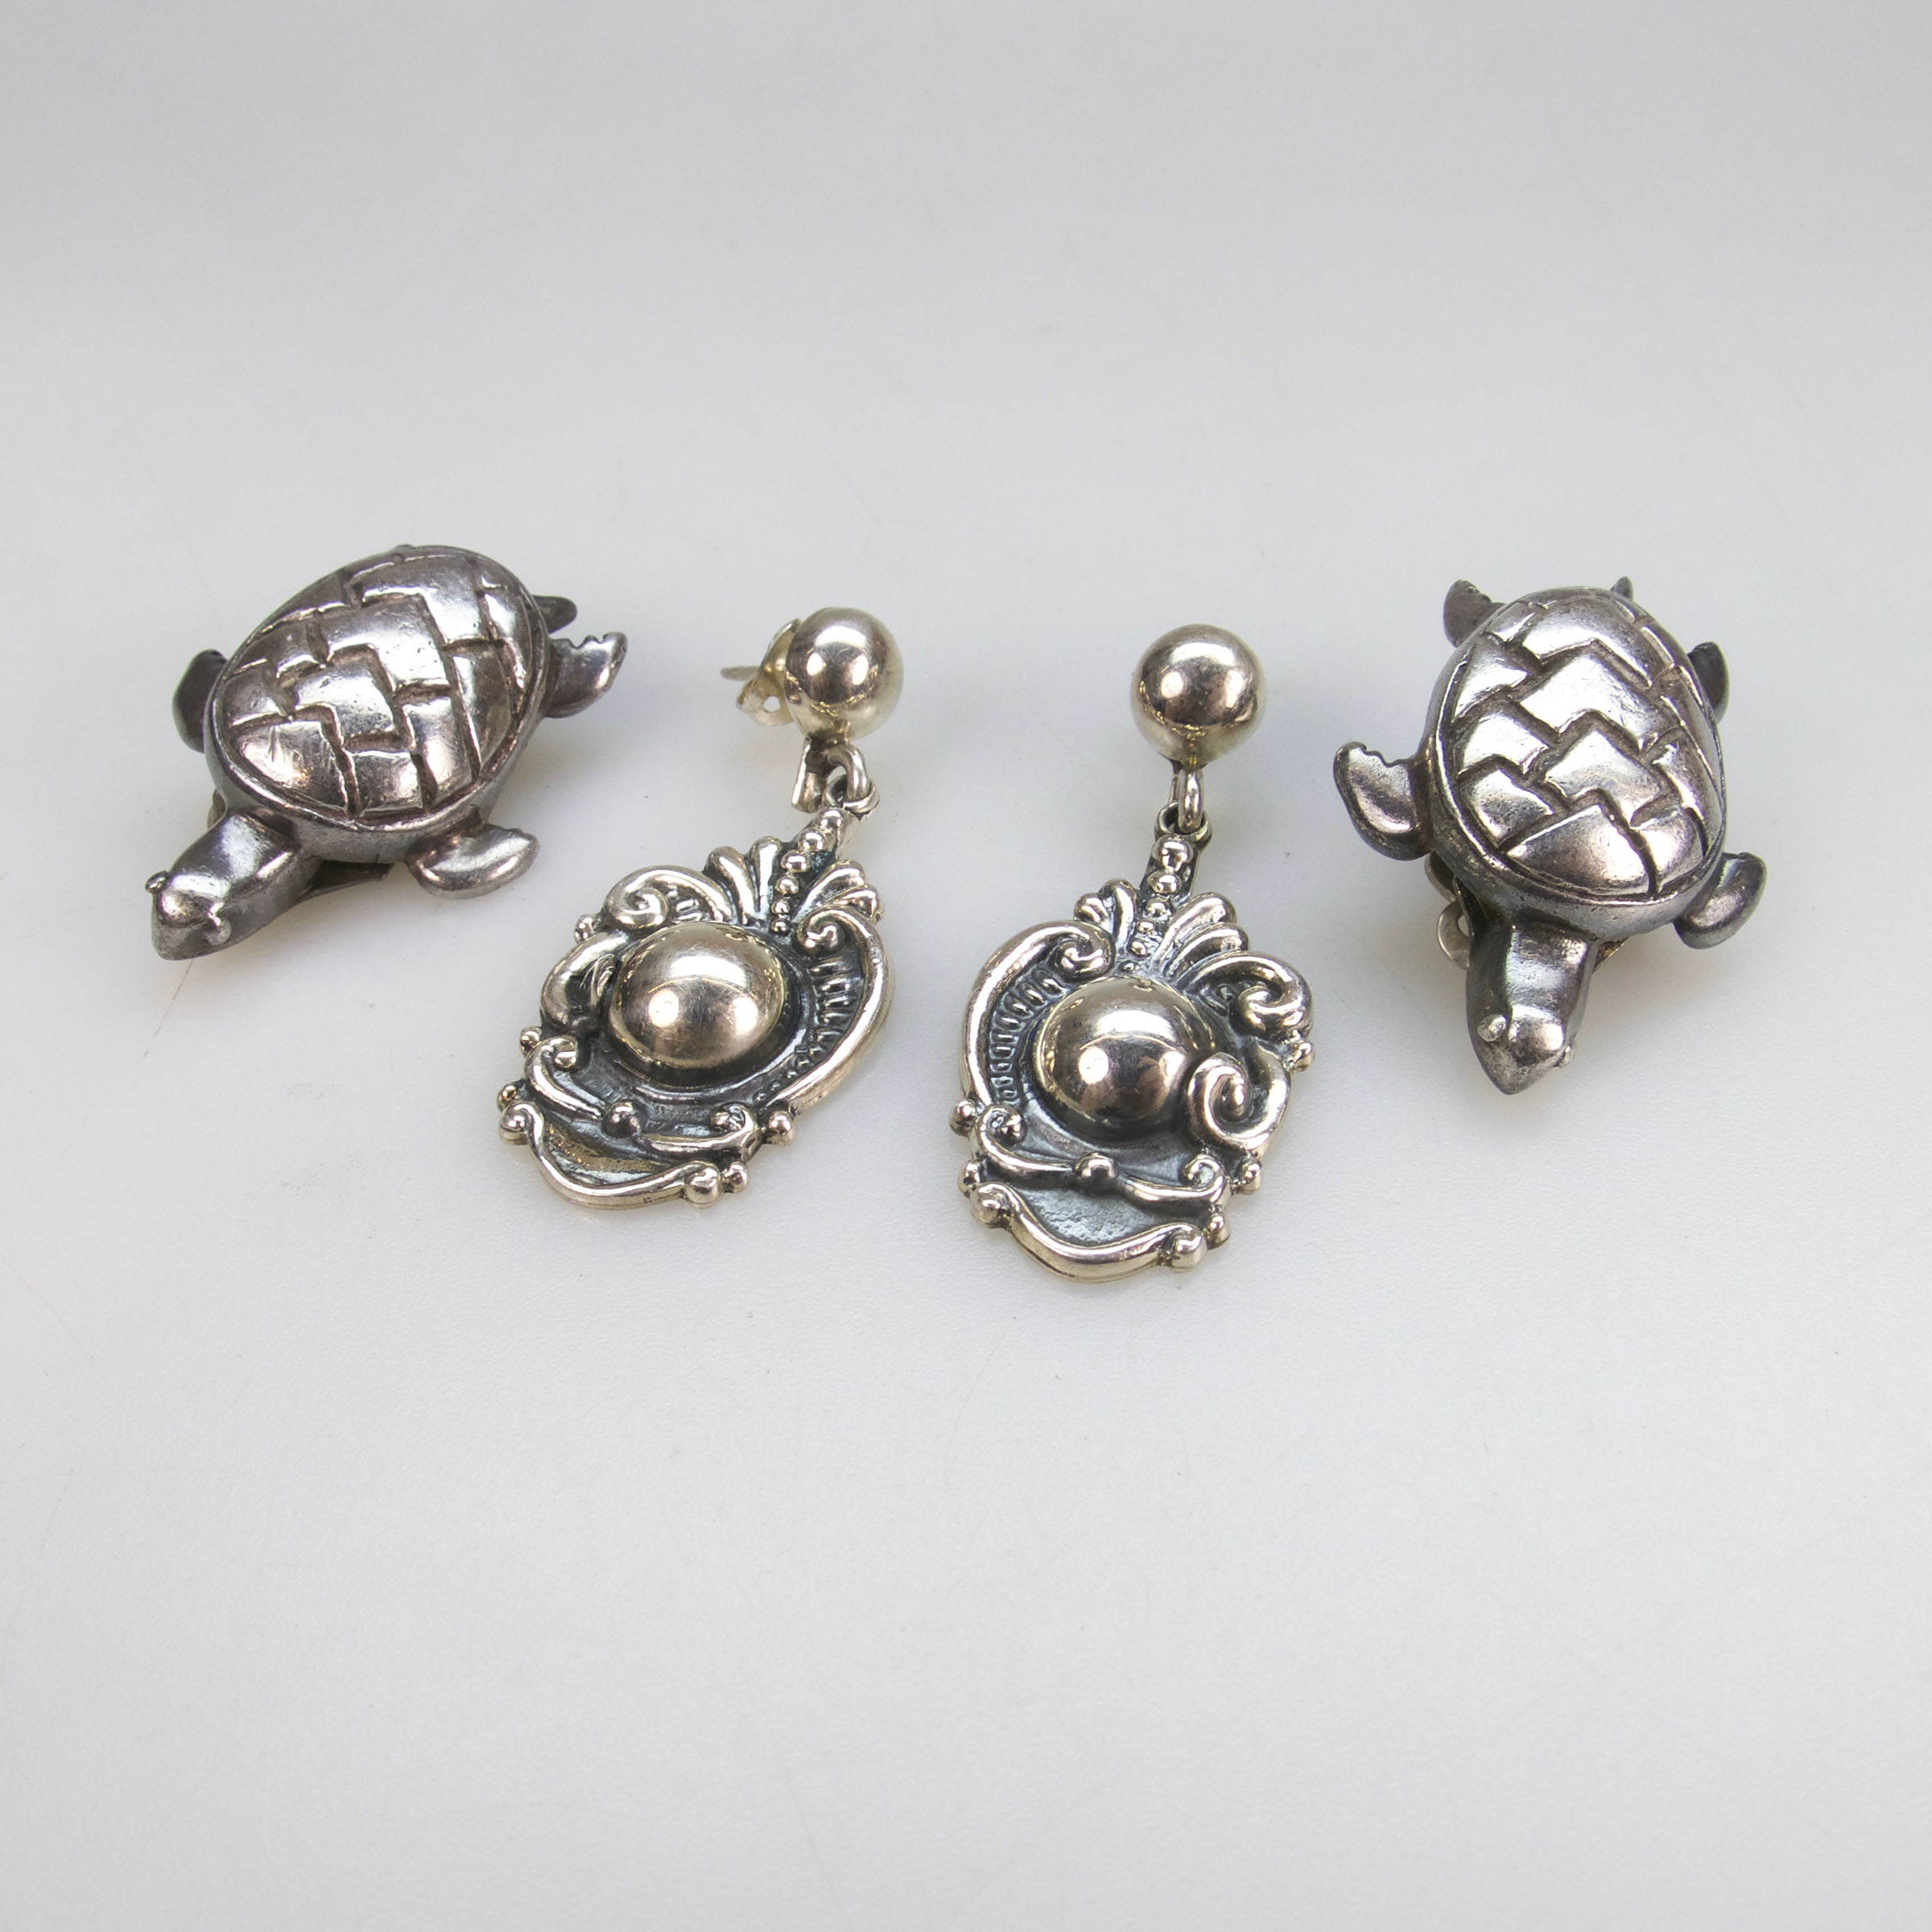 Two Pairs Of Mexican 950 Grade Silver Earrings